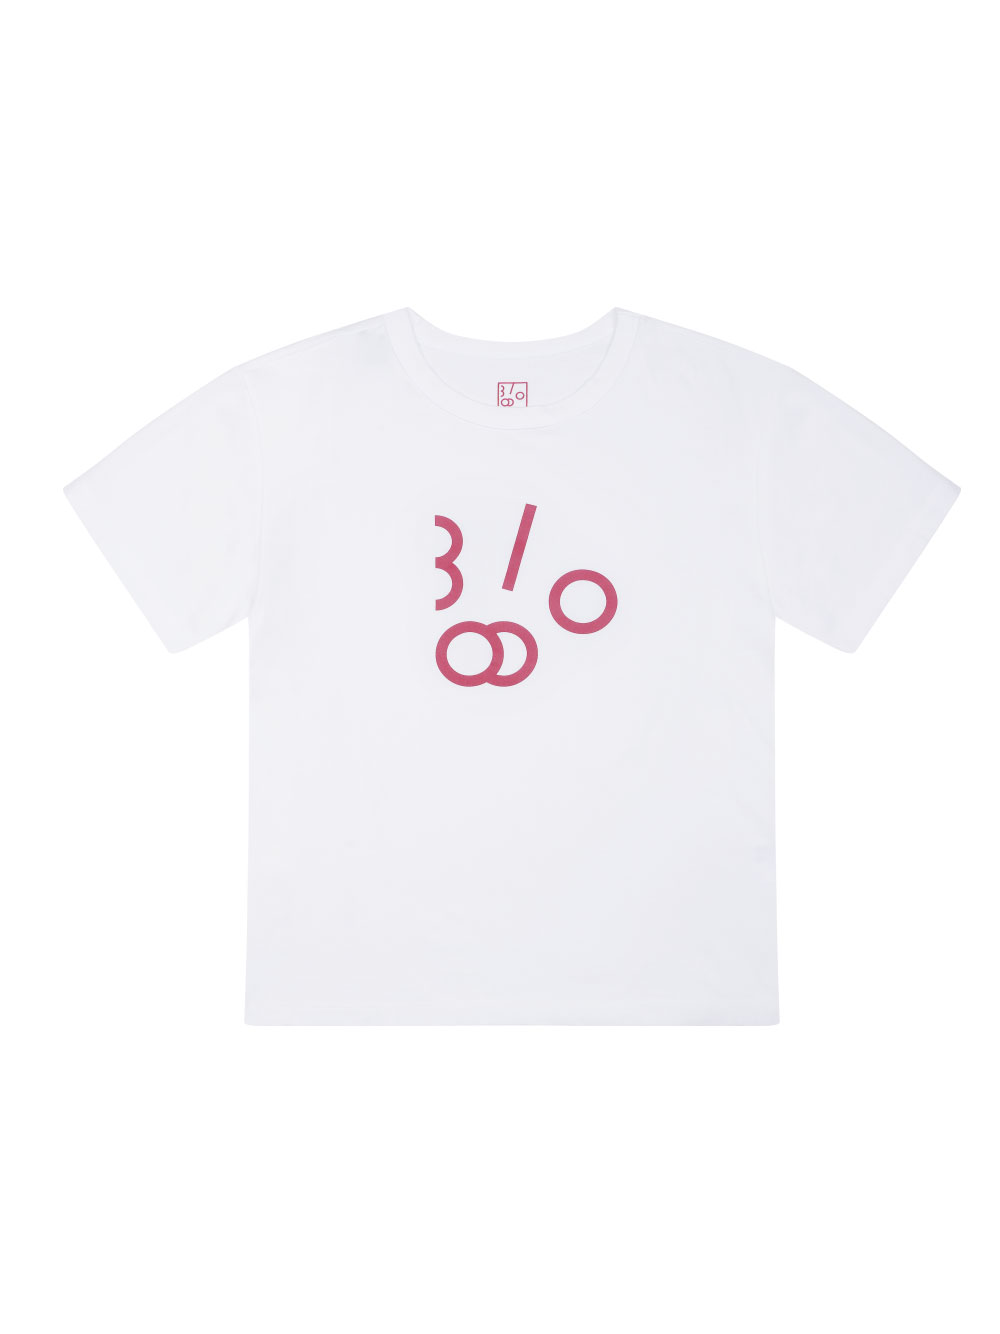 Harmony T-shirts (Japanese Red)